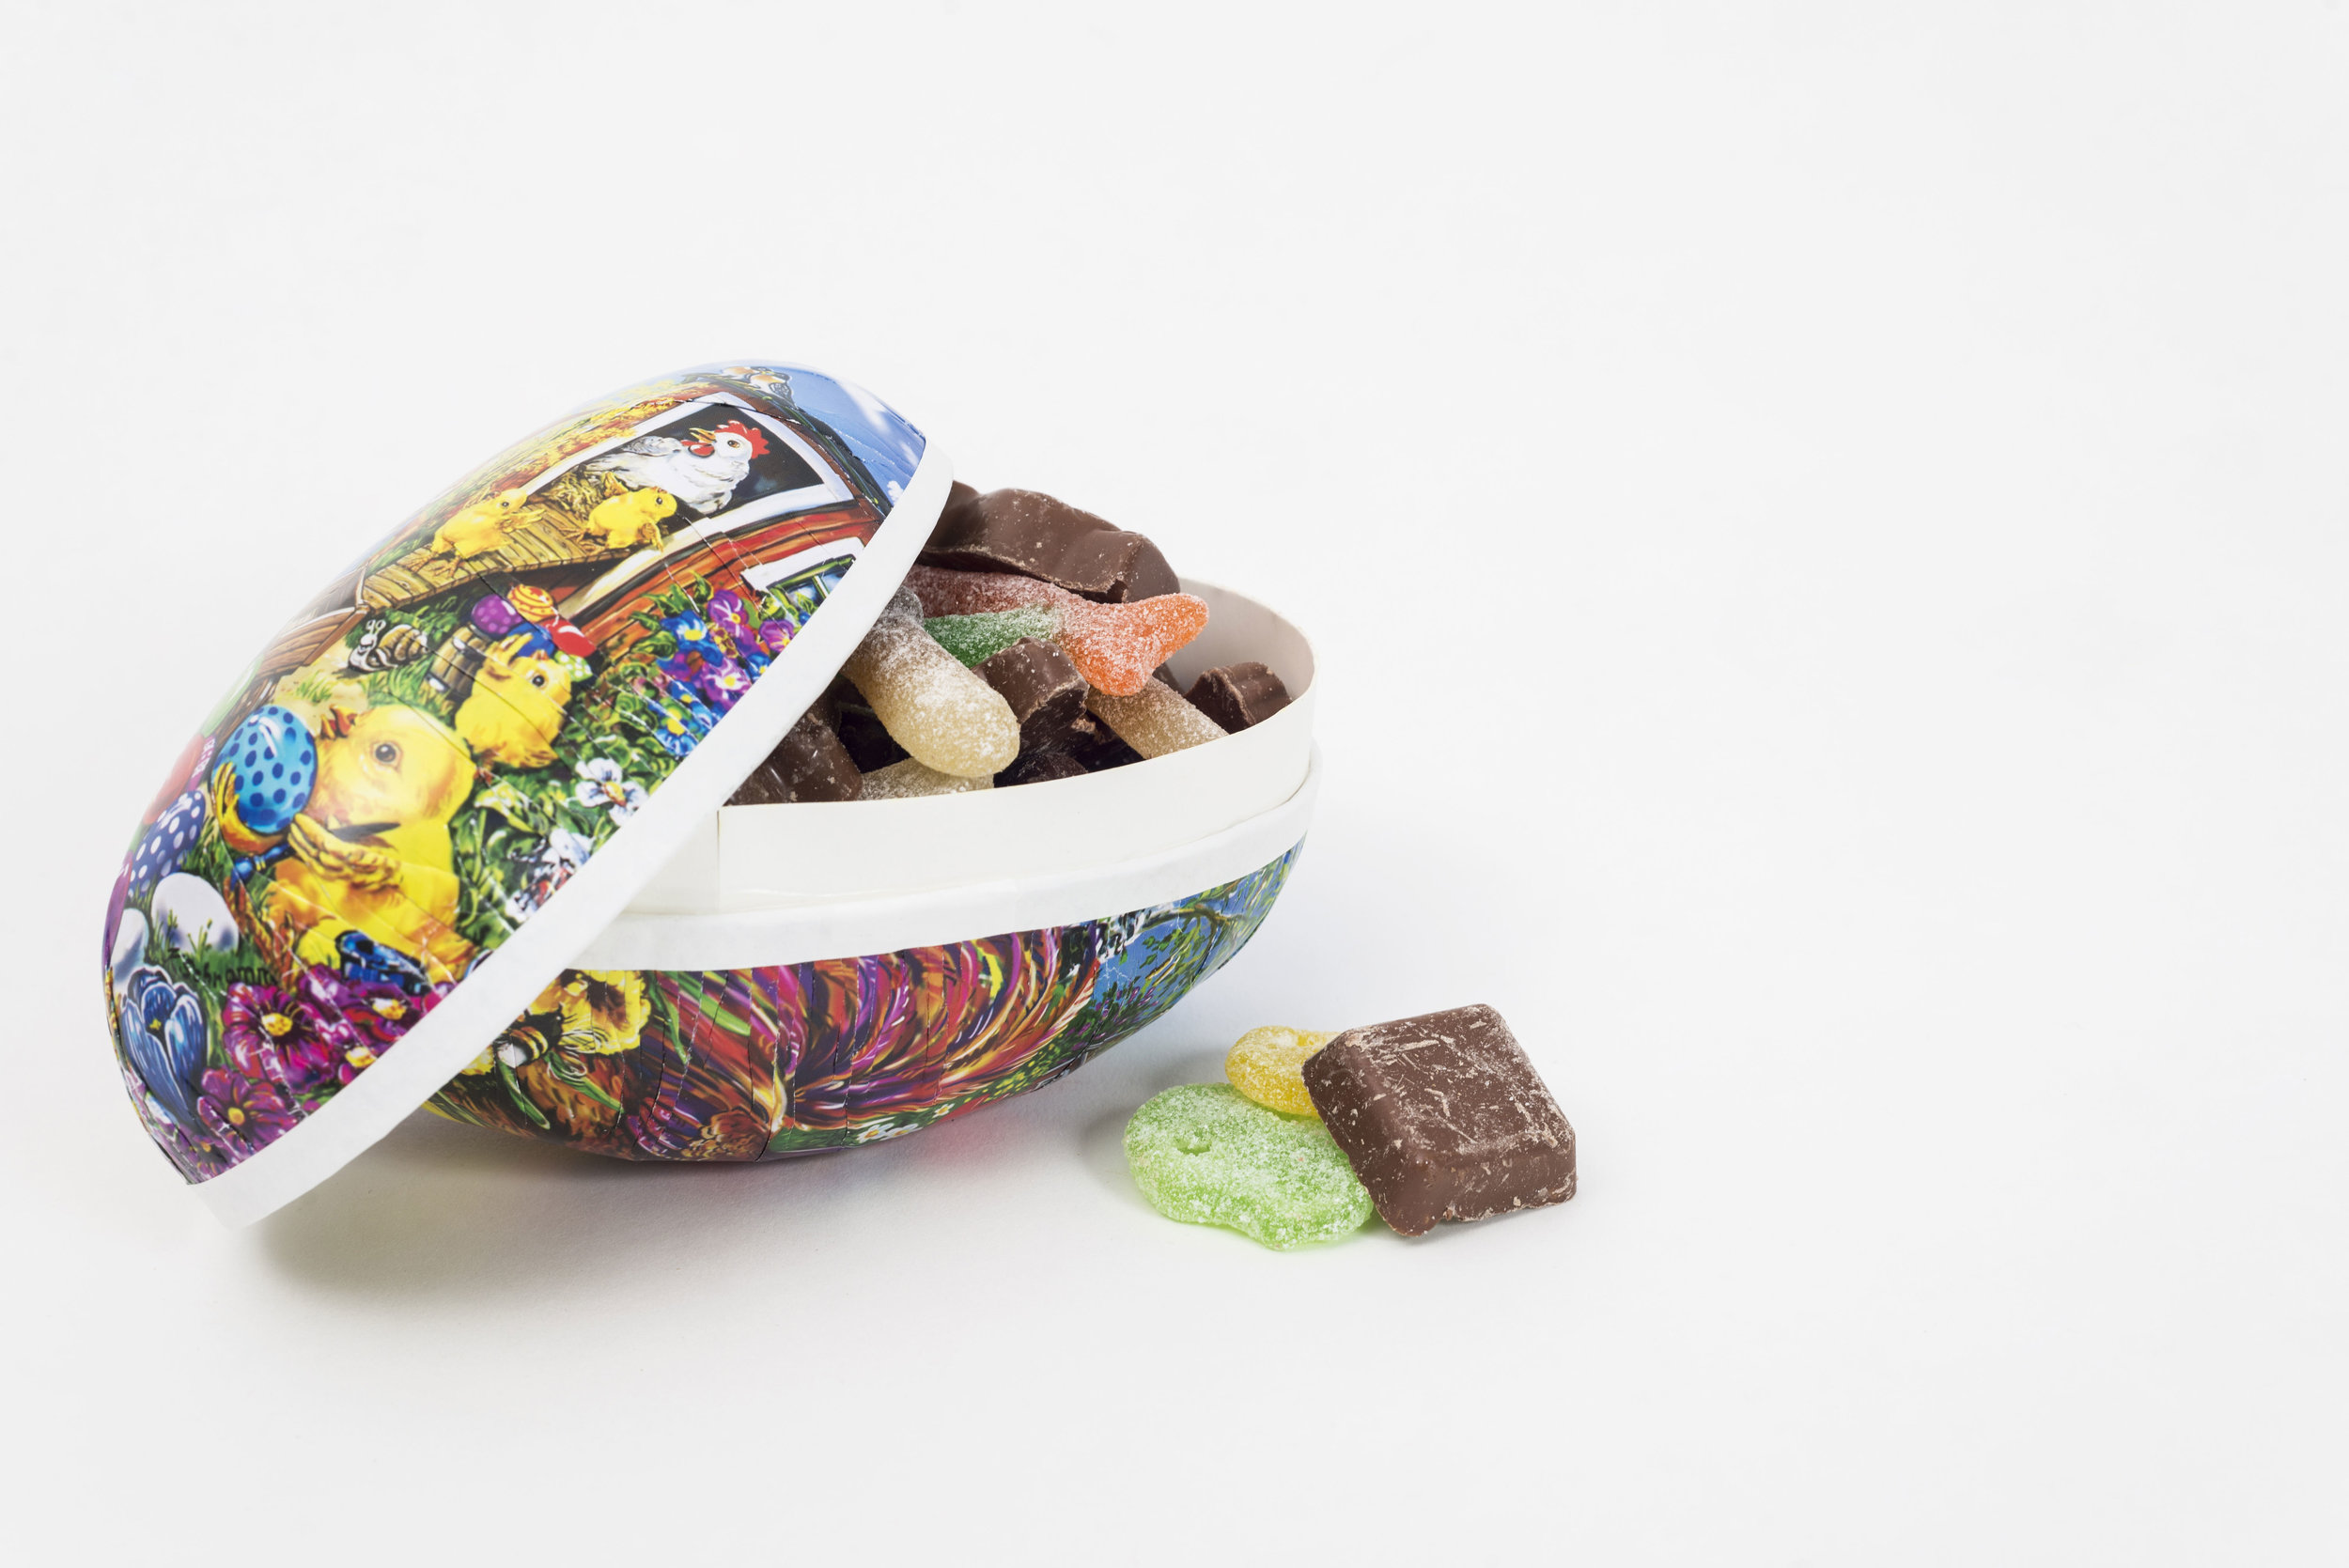 A typical Swedish Easter Egg (photo by R_Green via Shutterstock)